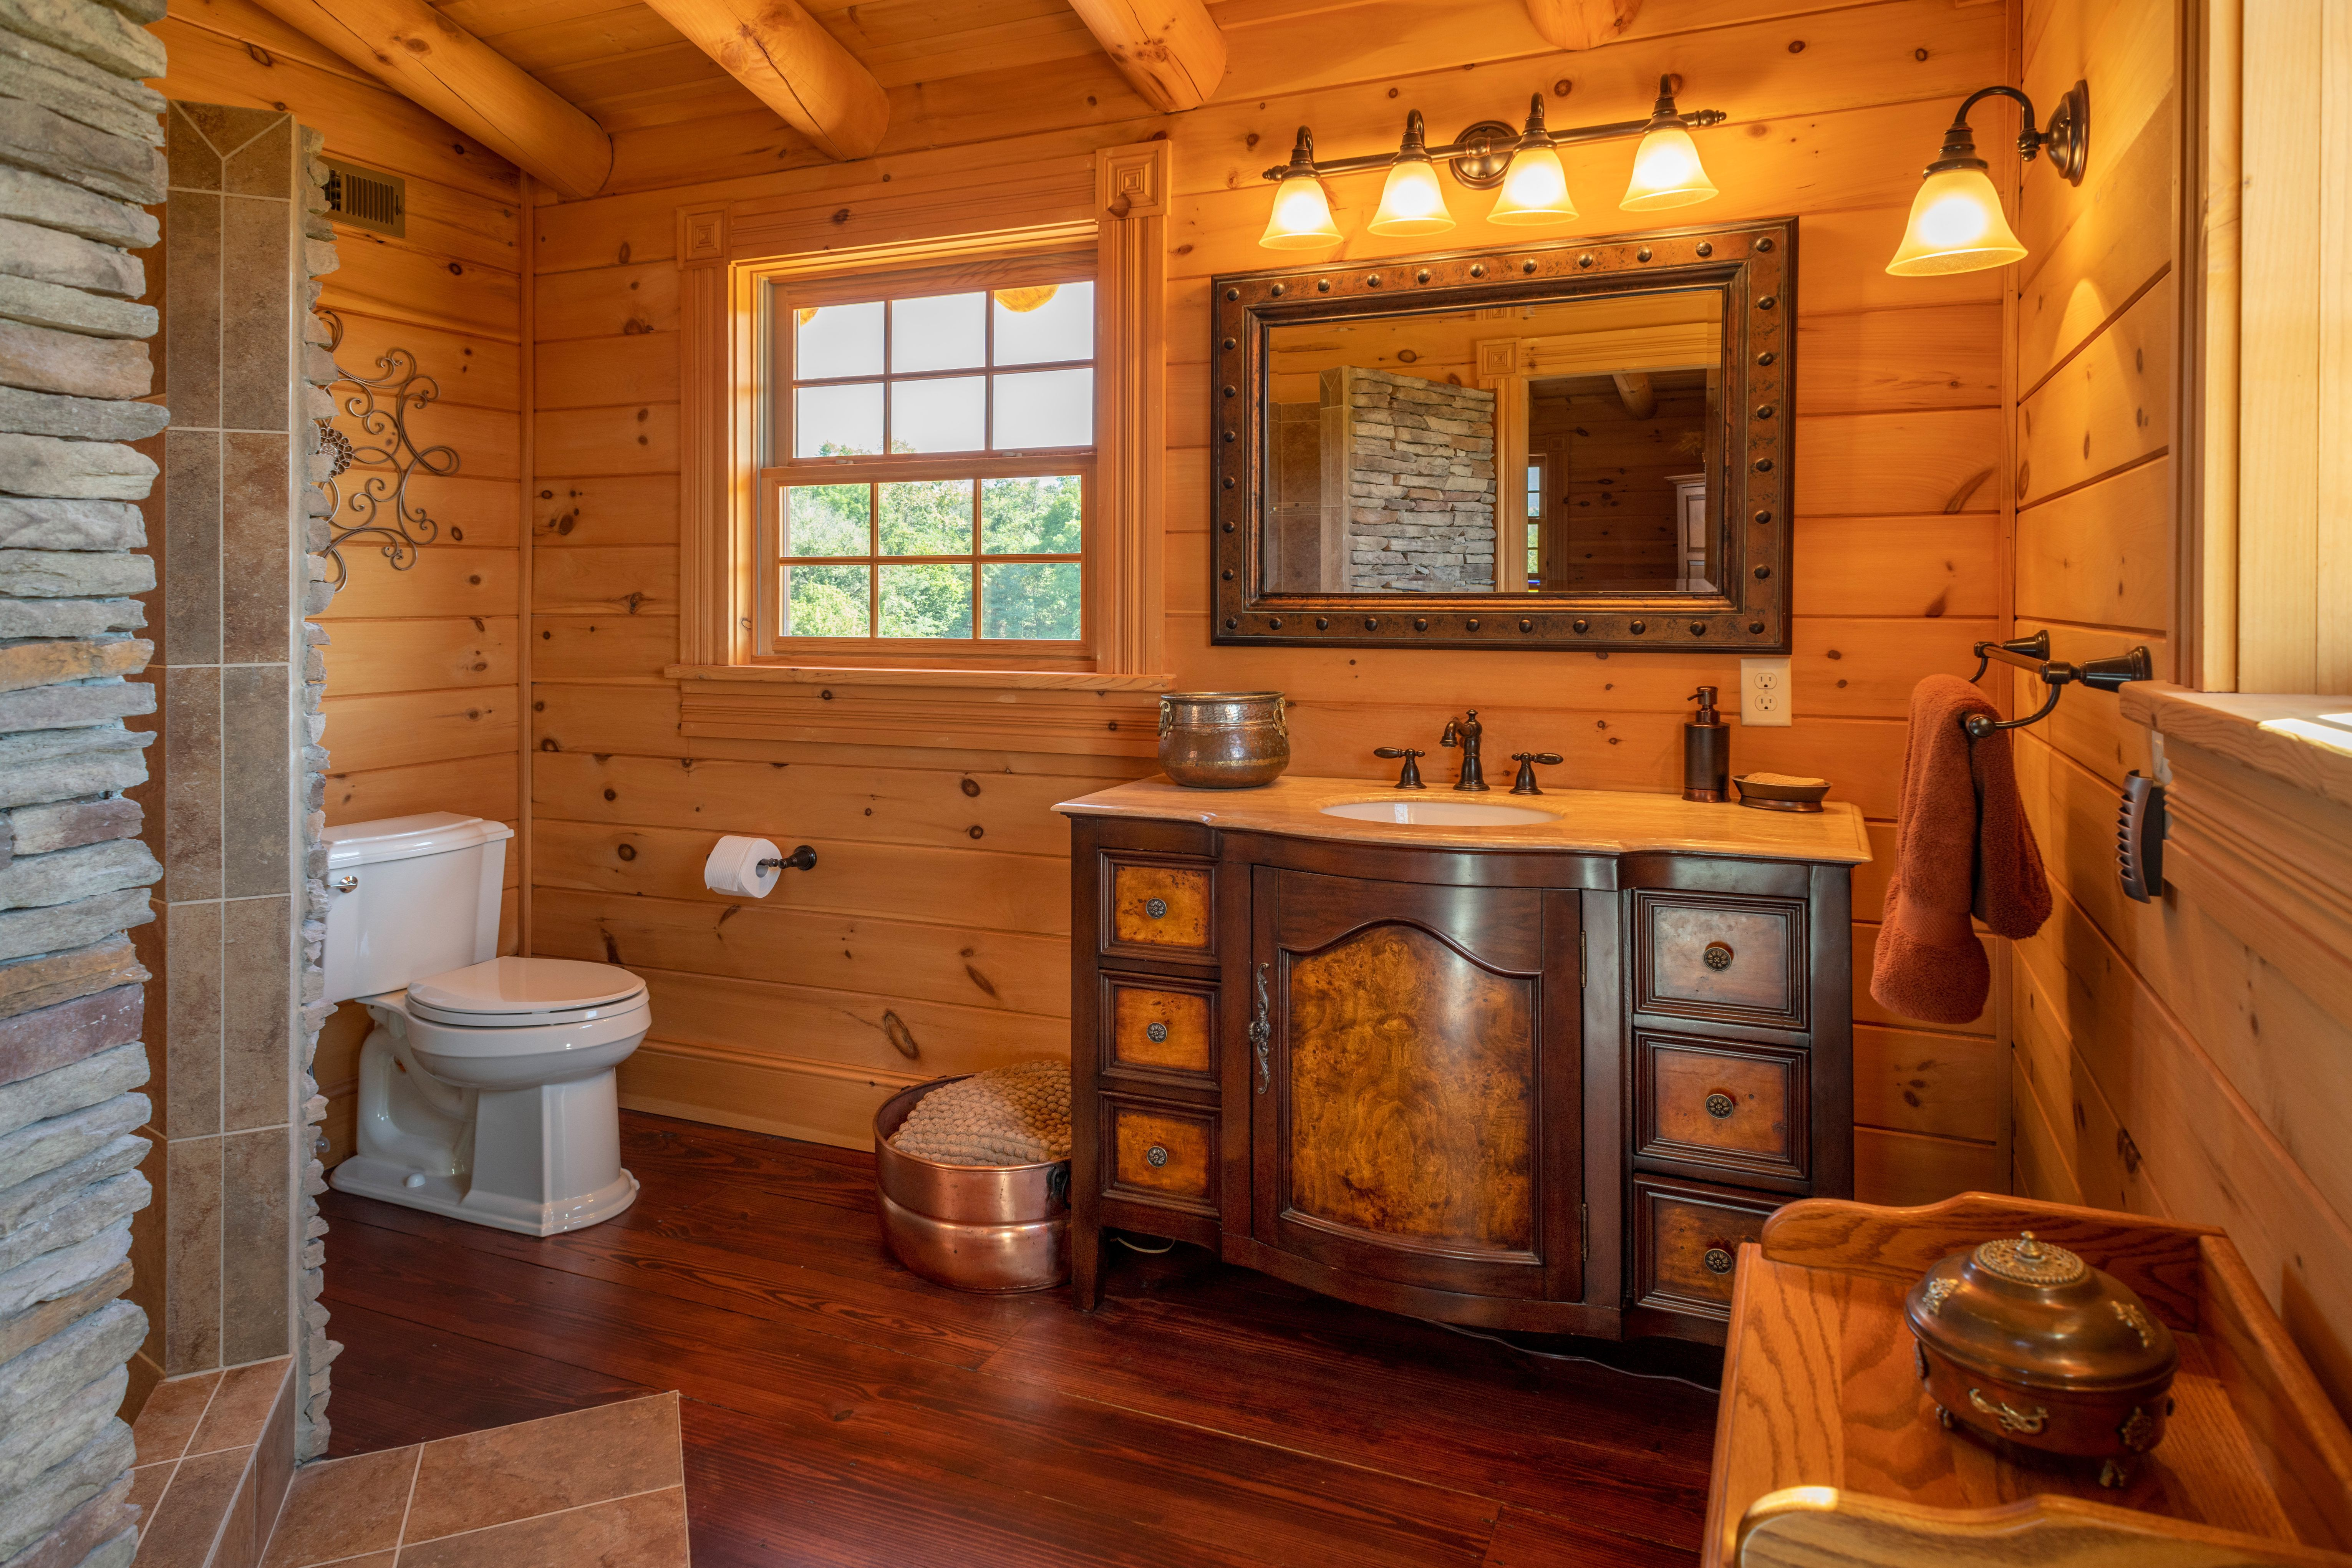 Stone and tile encase the walk in shower in this log cabin